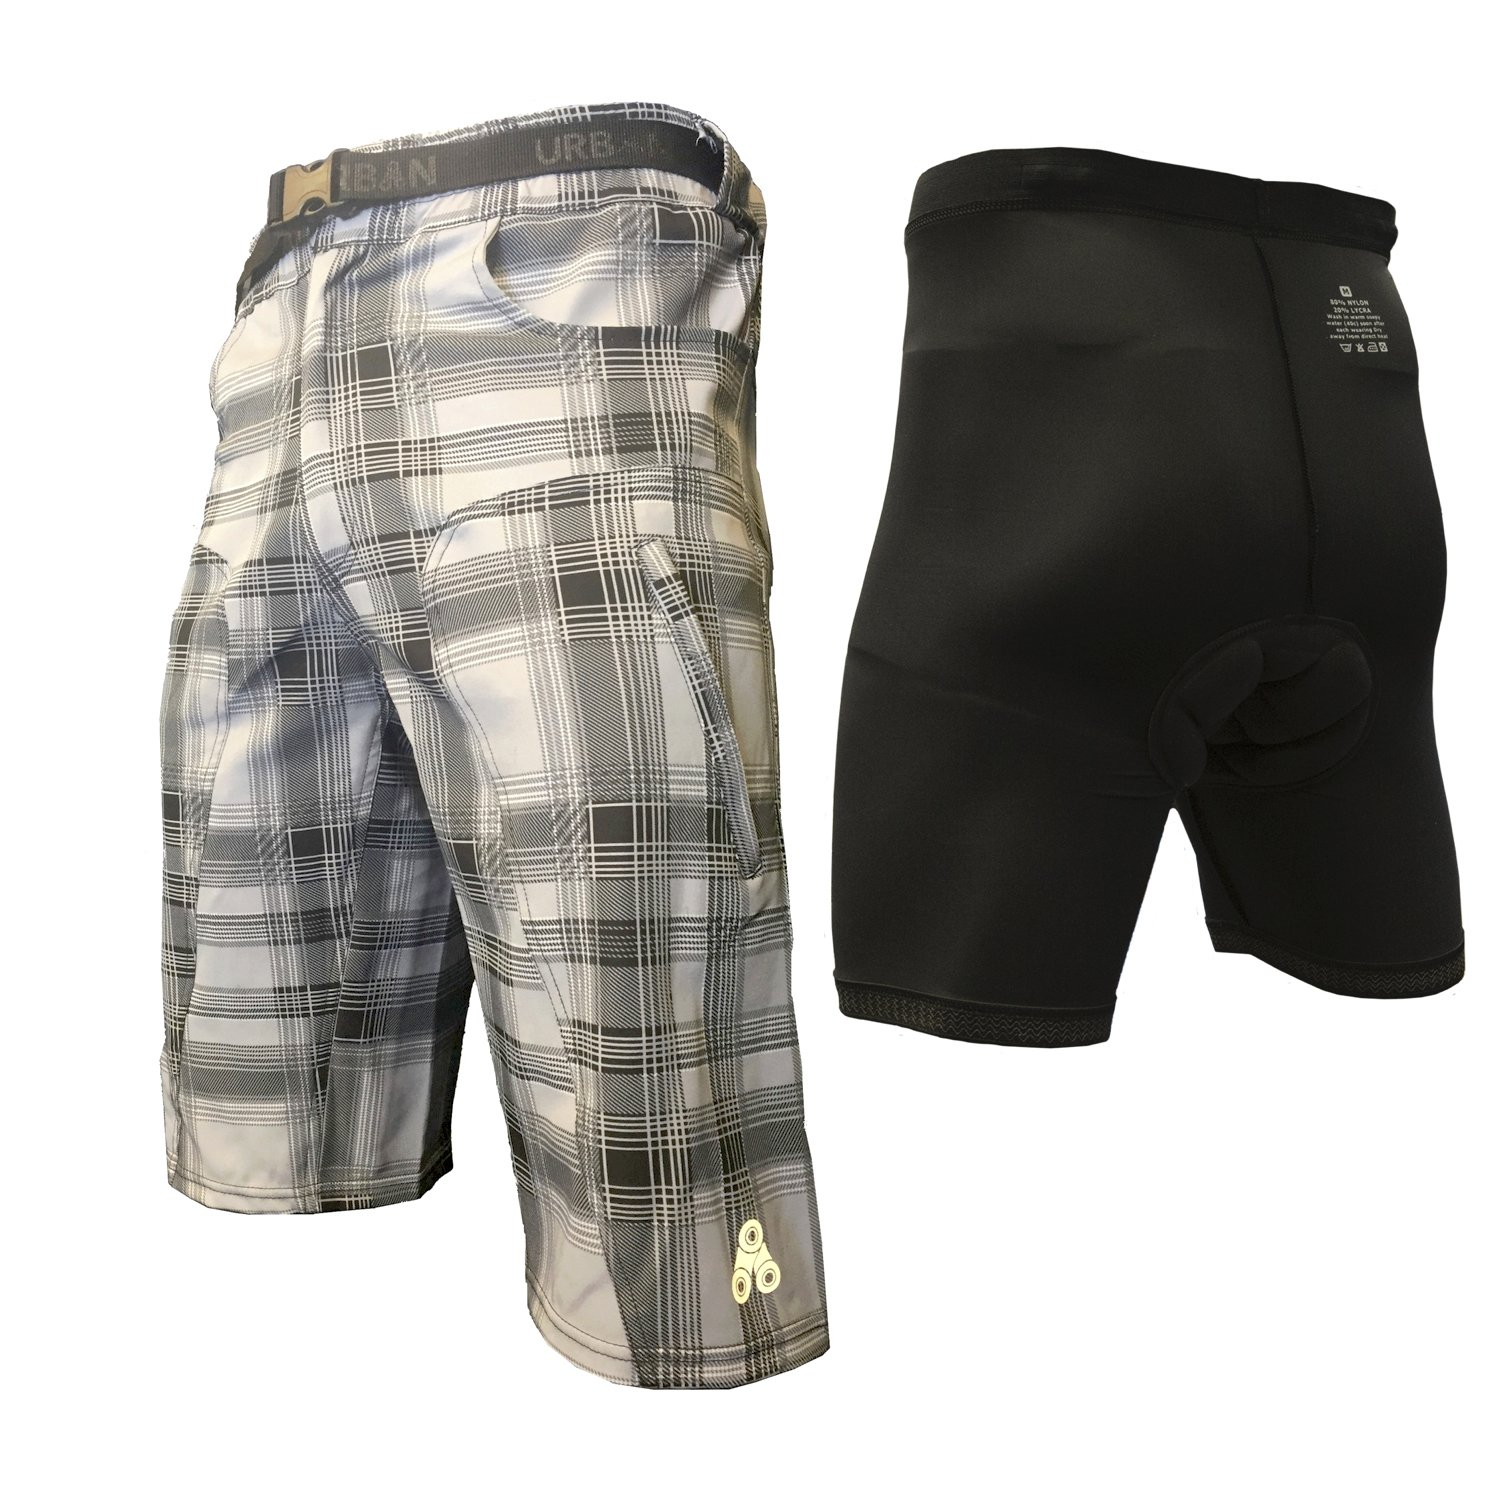 The Enduro - Men's MTB Off Road Cycling Shorts Bundle with ClickFast Padded Undershorts with Coolmax Technology (Small, Plaid) by Urban Cycling Apparel